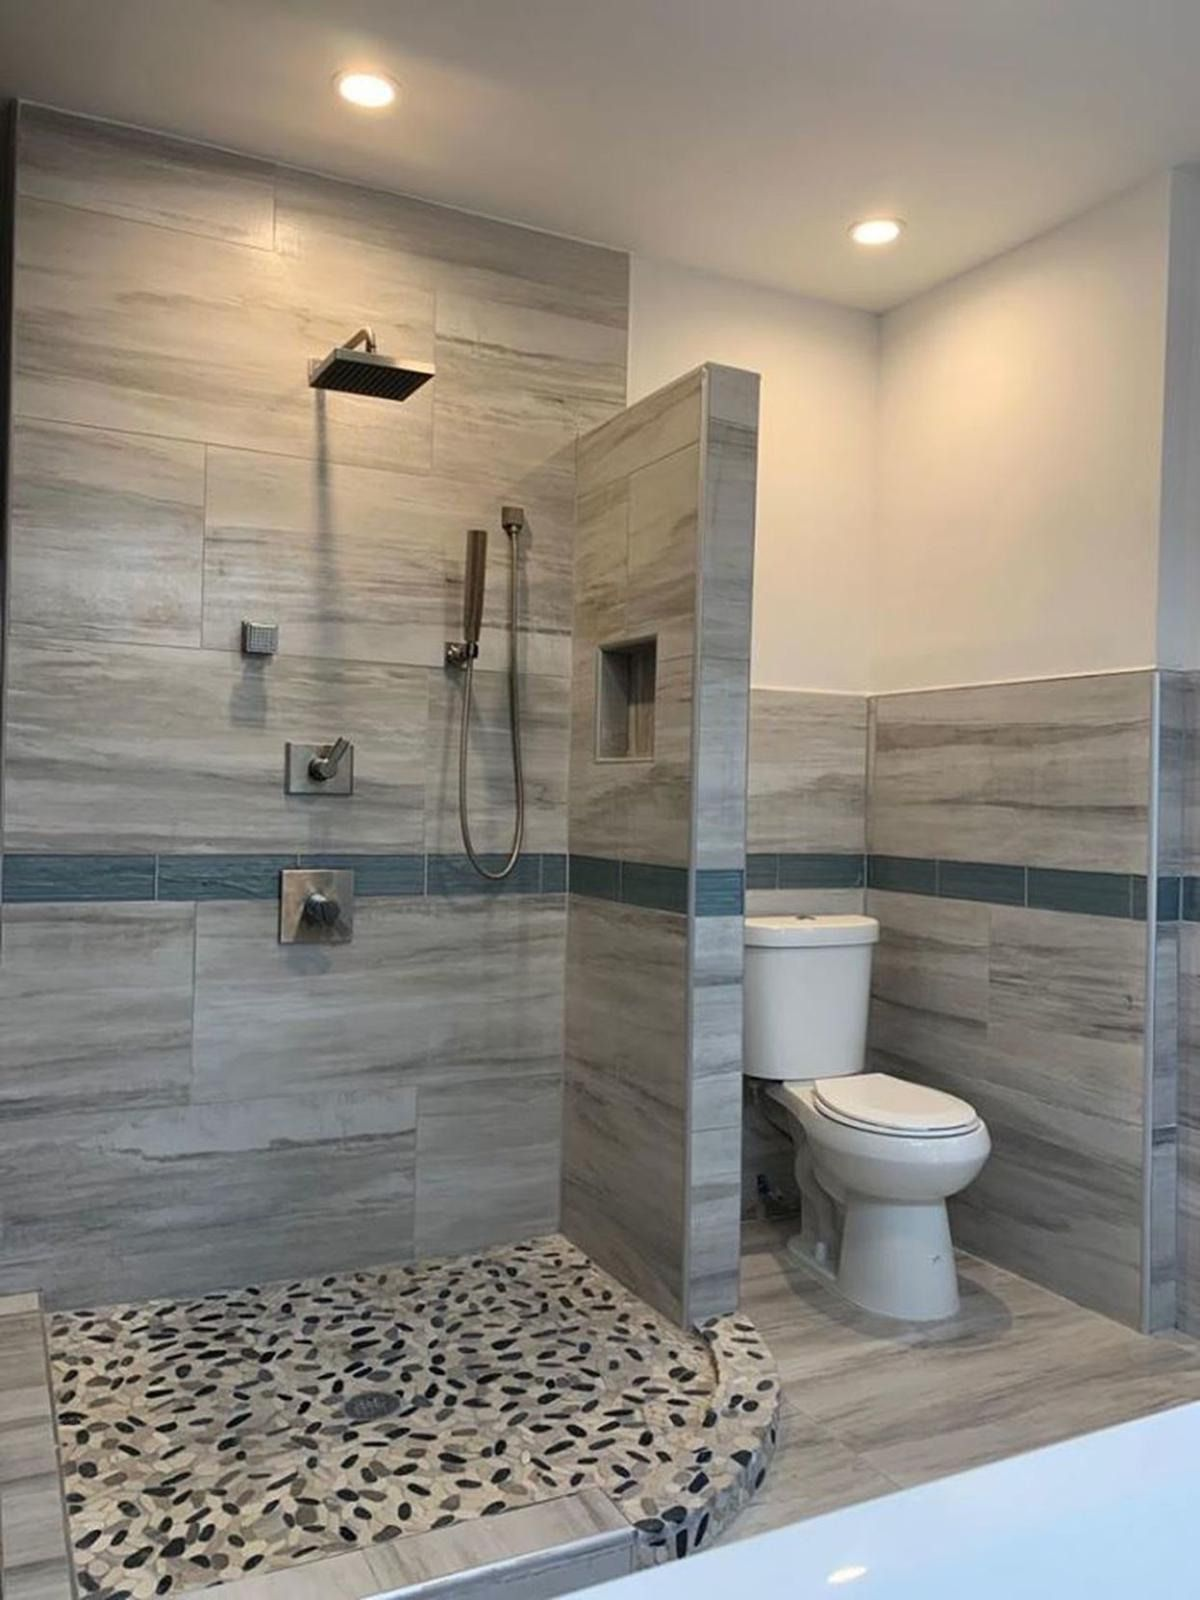 A Bathroom Without Doors A West Philly Apartment Tests The Open Concept Bathroom Open Bathroom Showers Without Doors